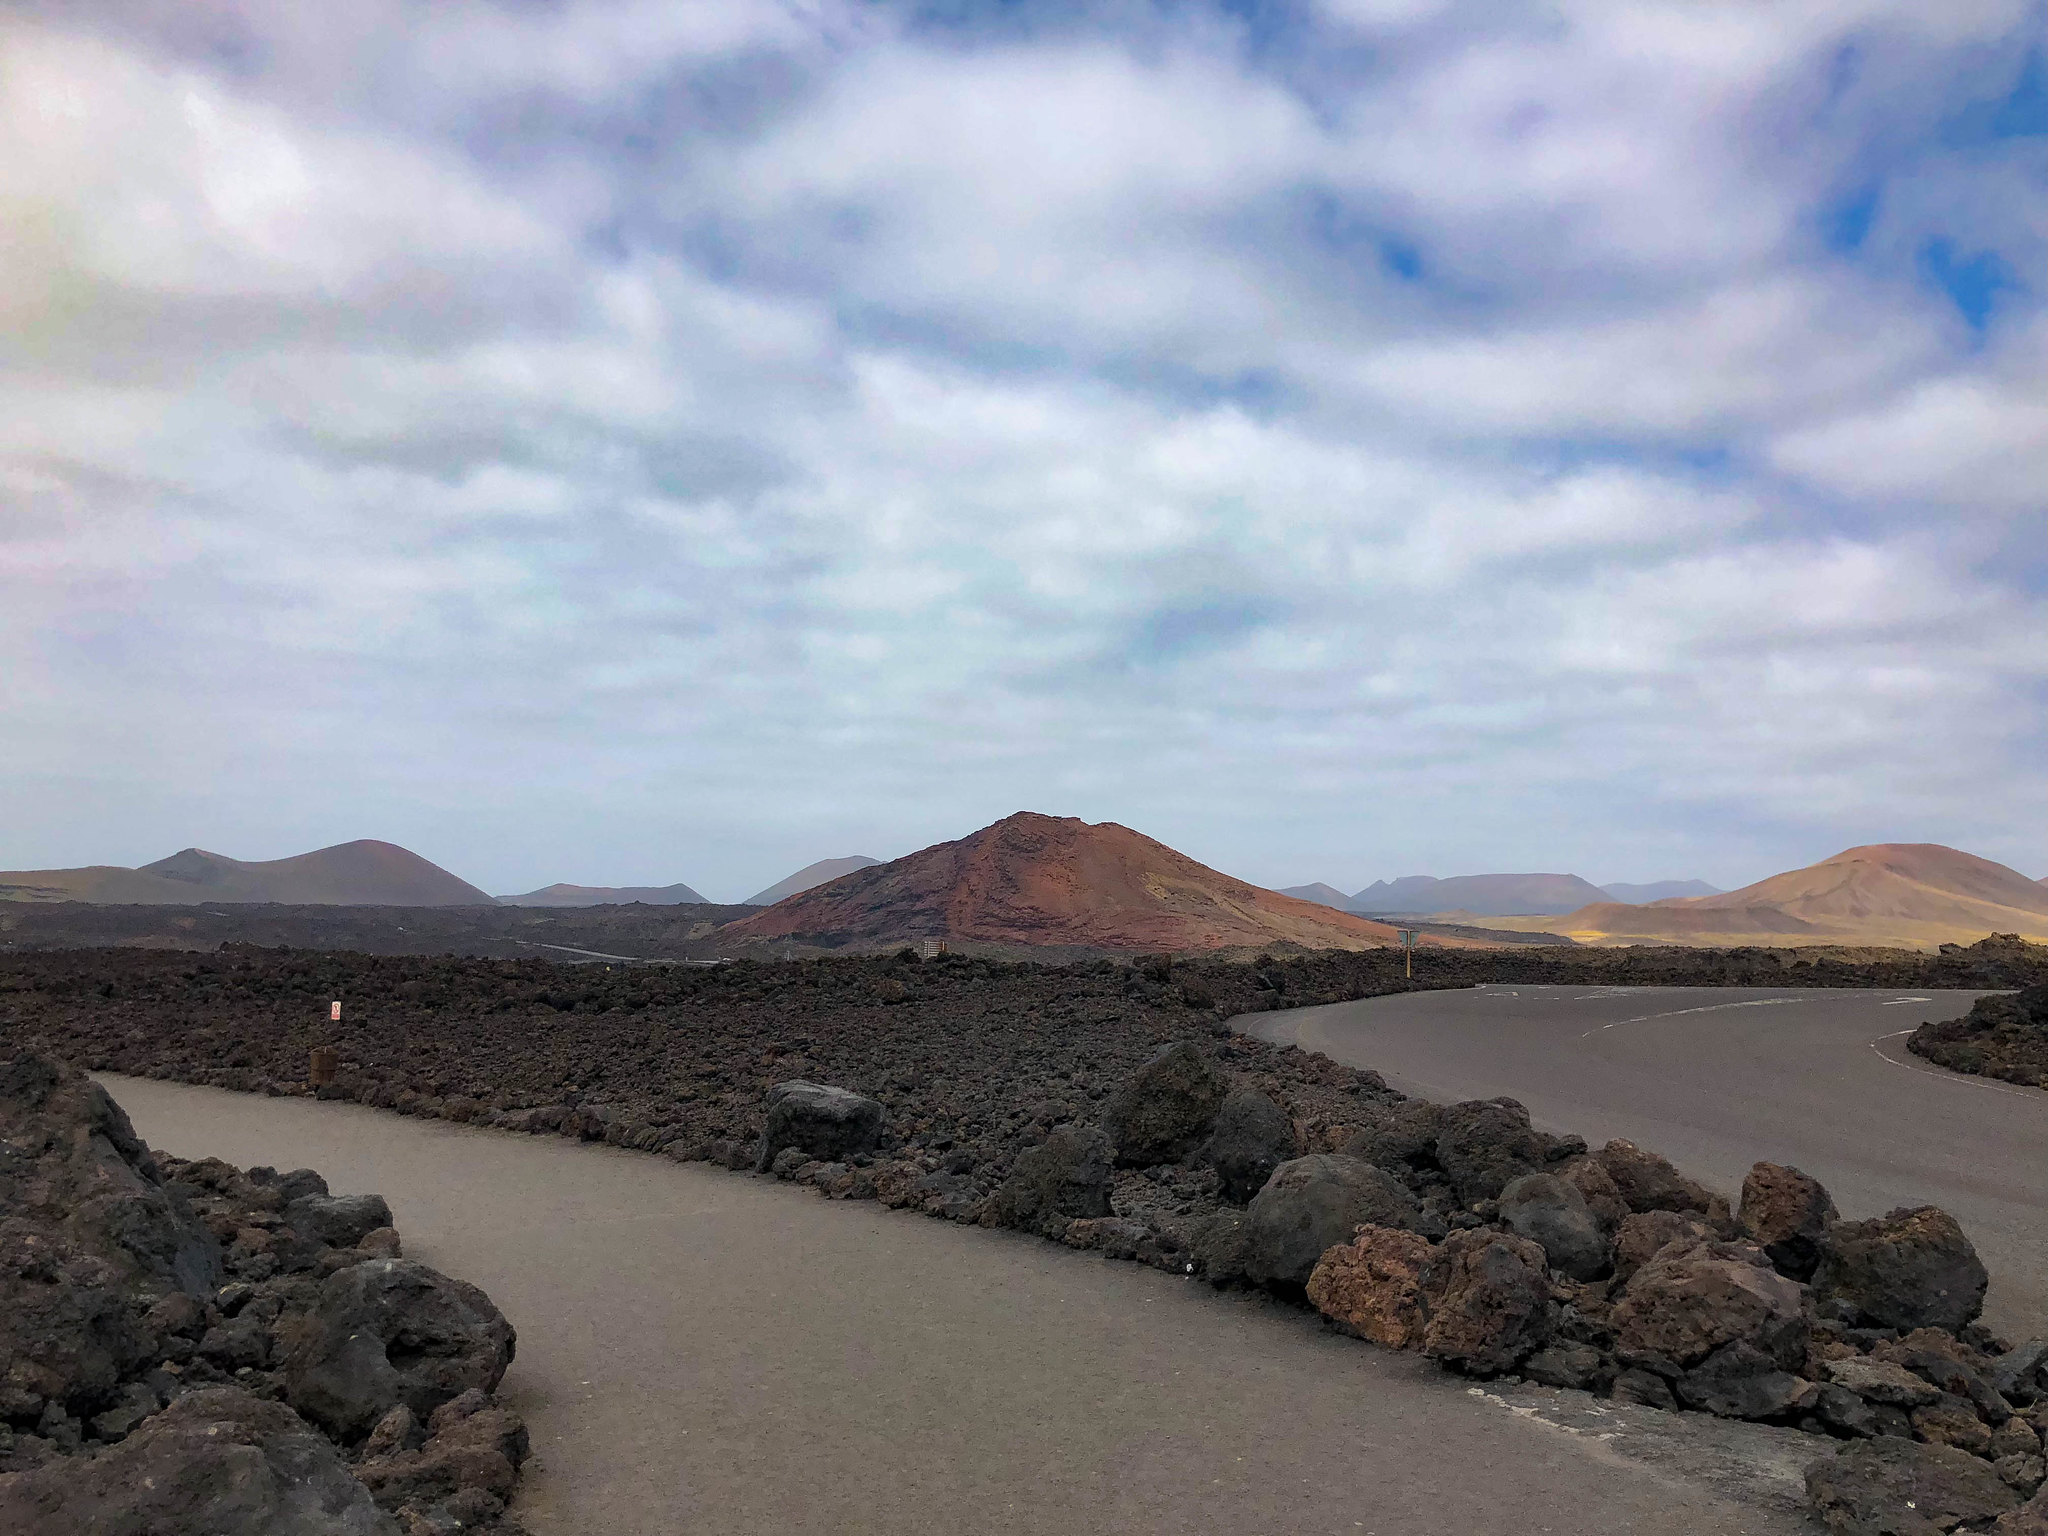 Volcanic mountains of Lanzarote